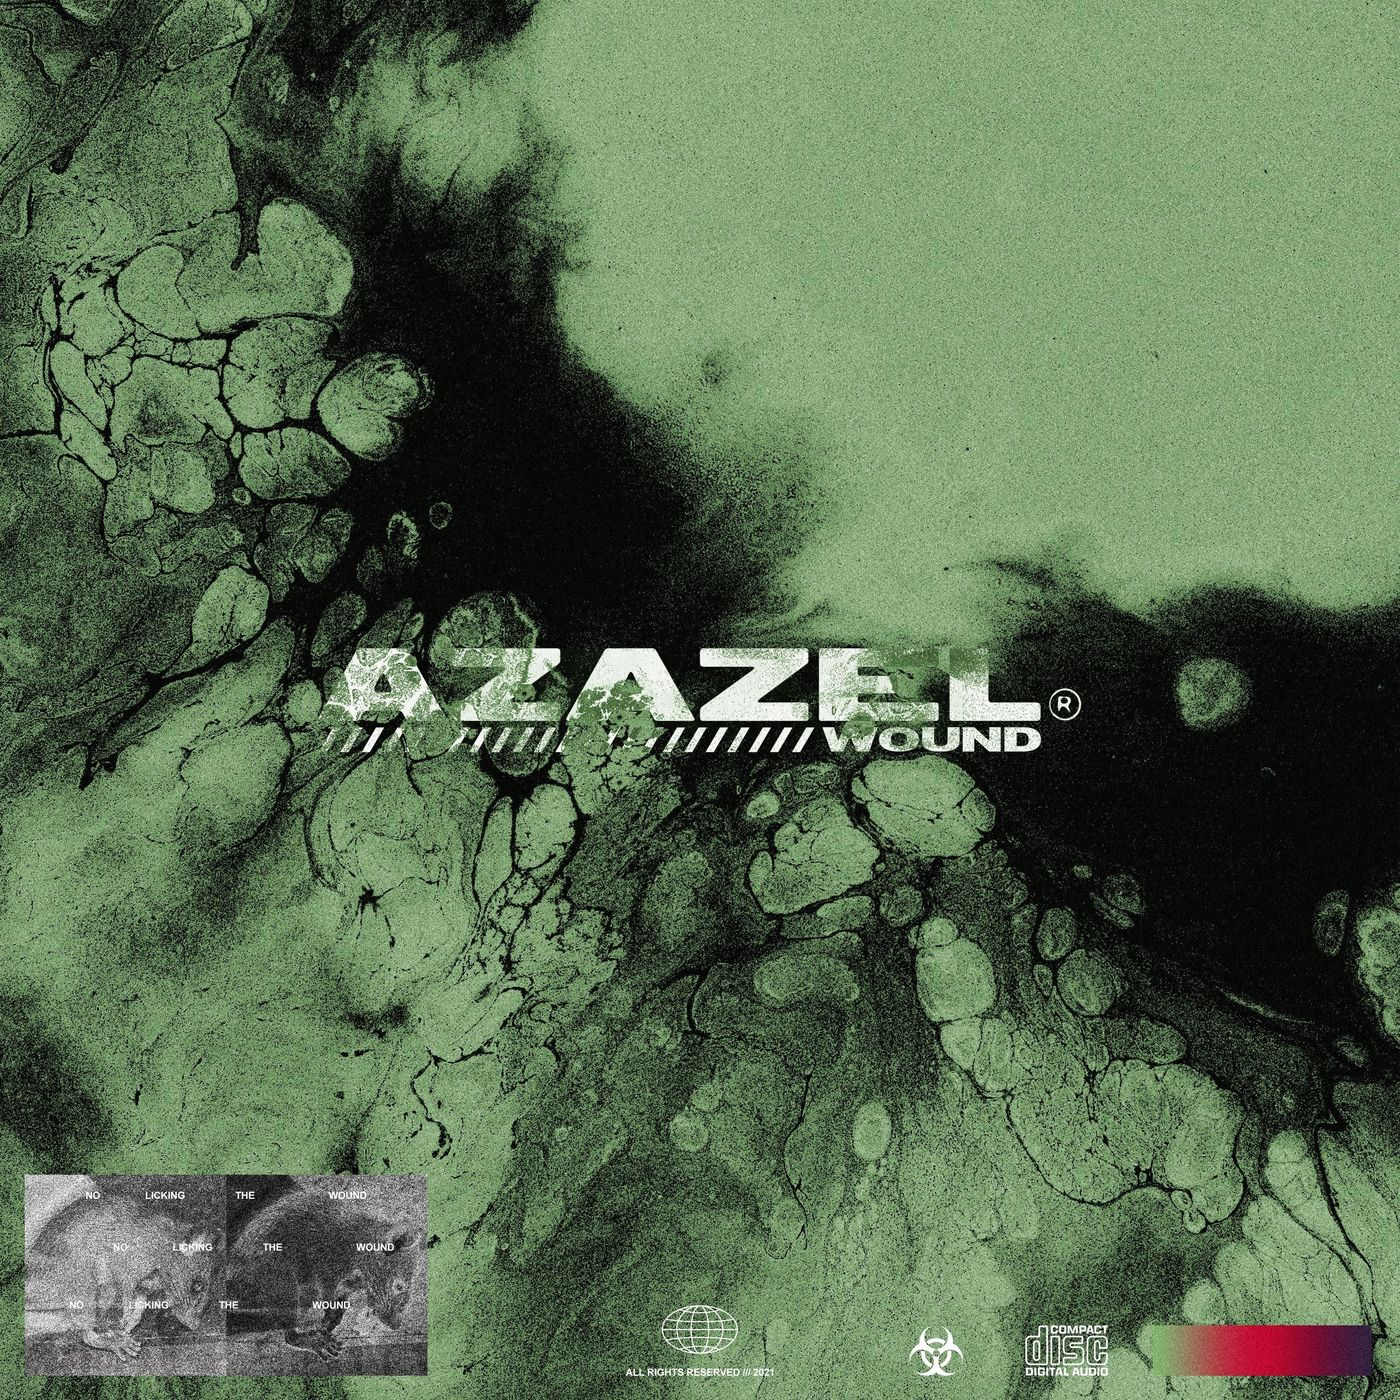 Azazel - WOUND [single] (2021)